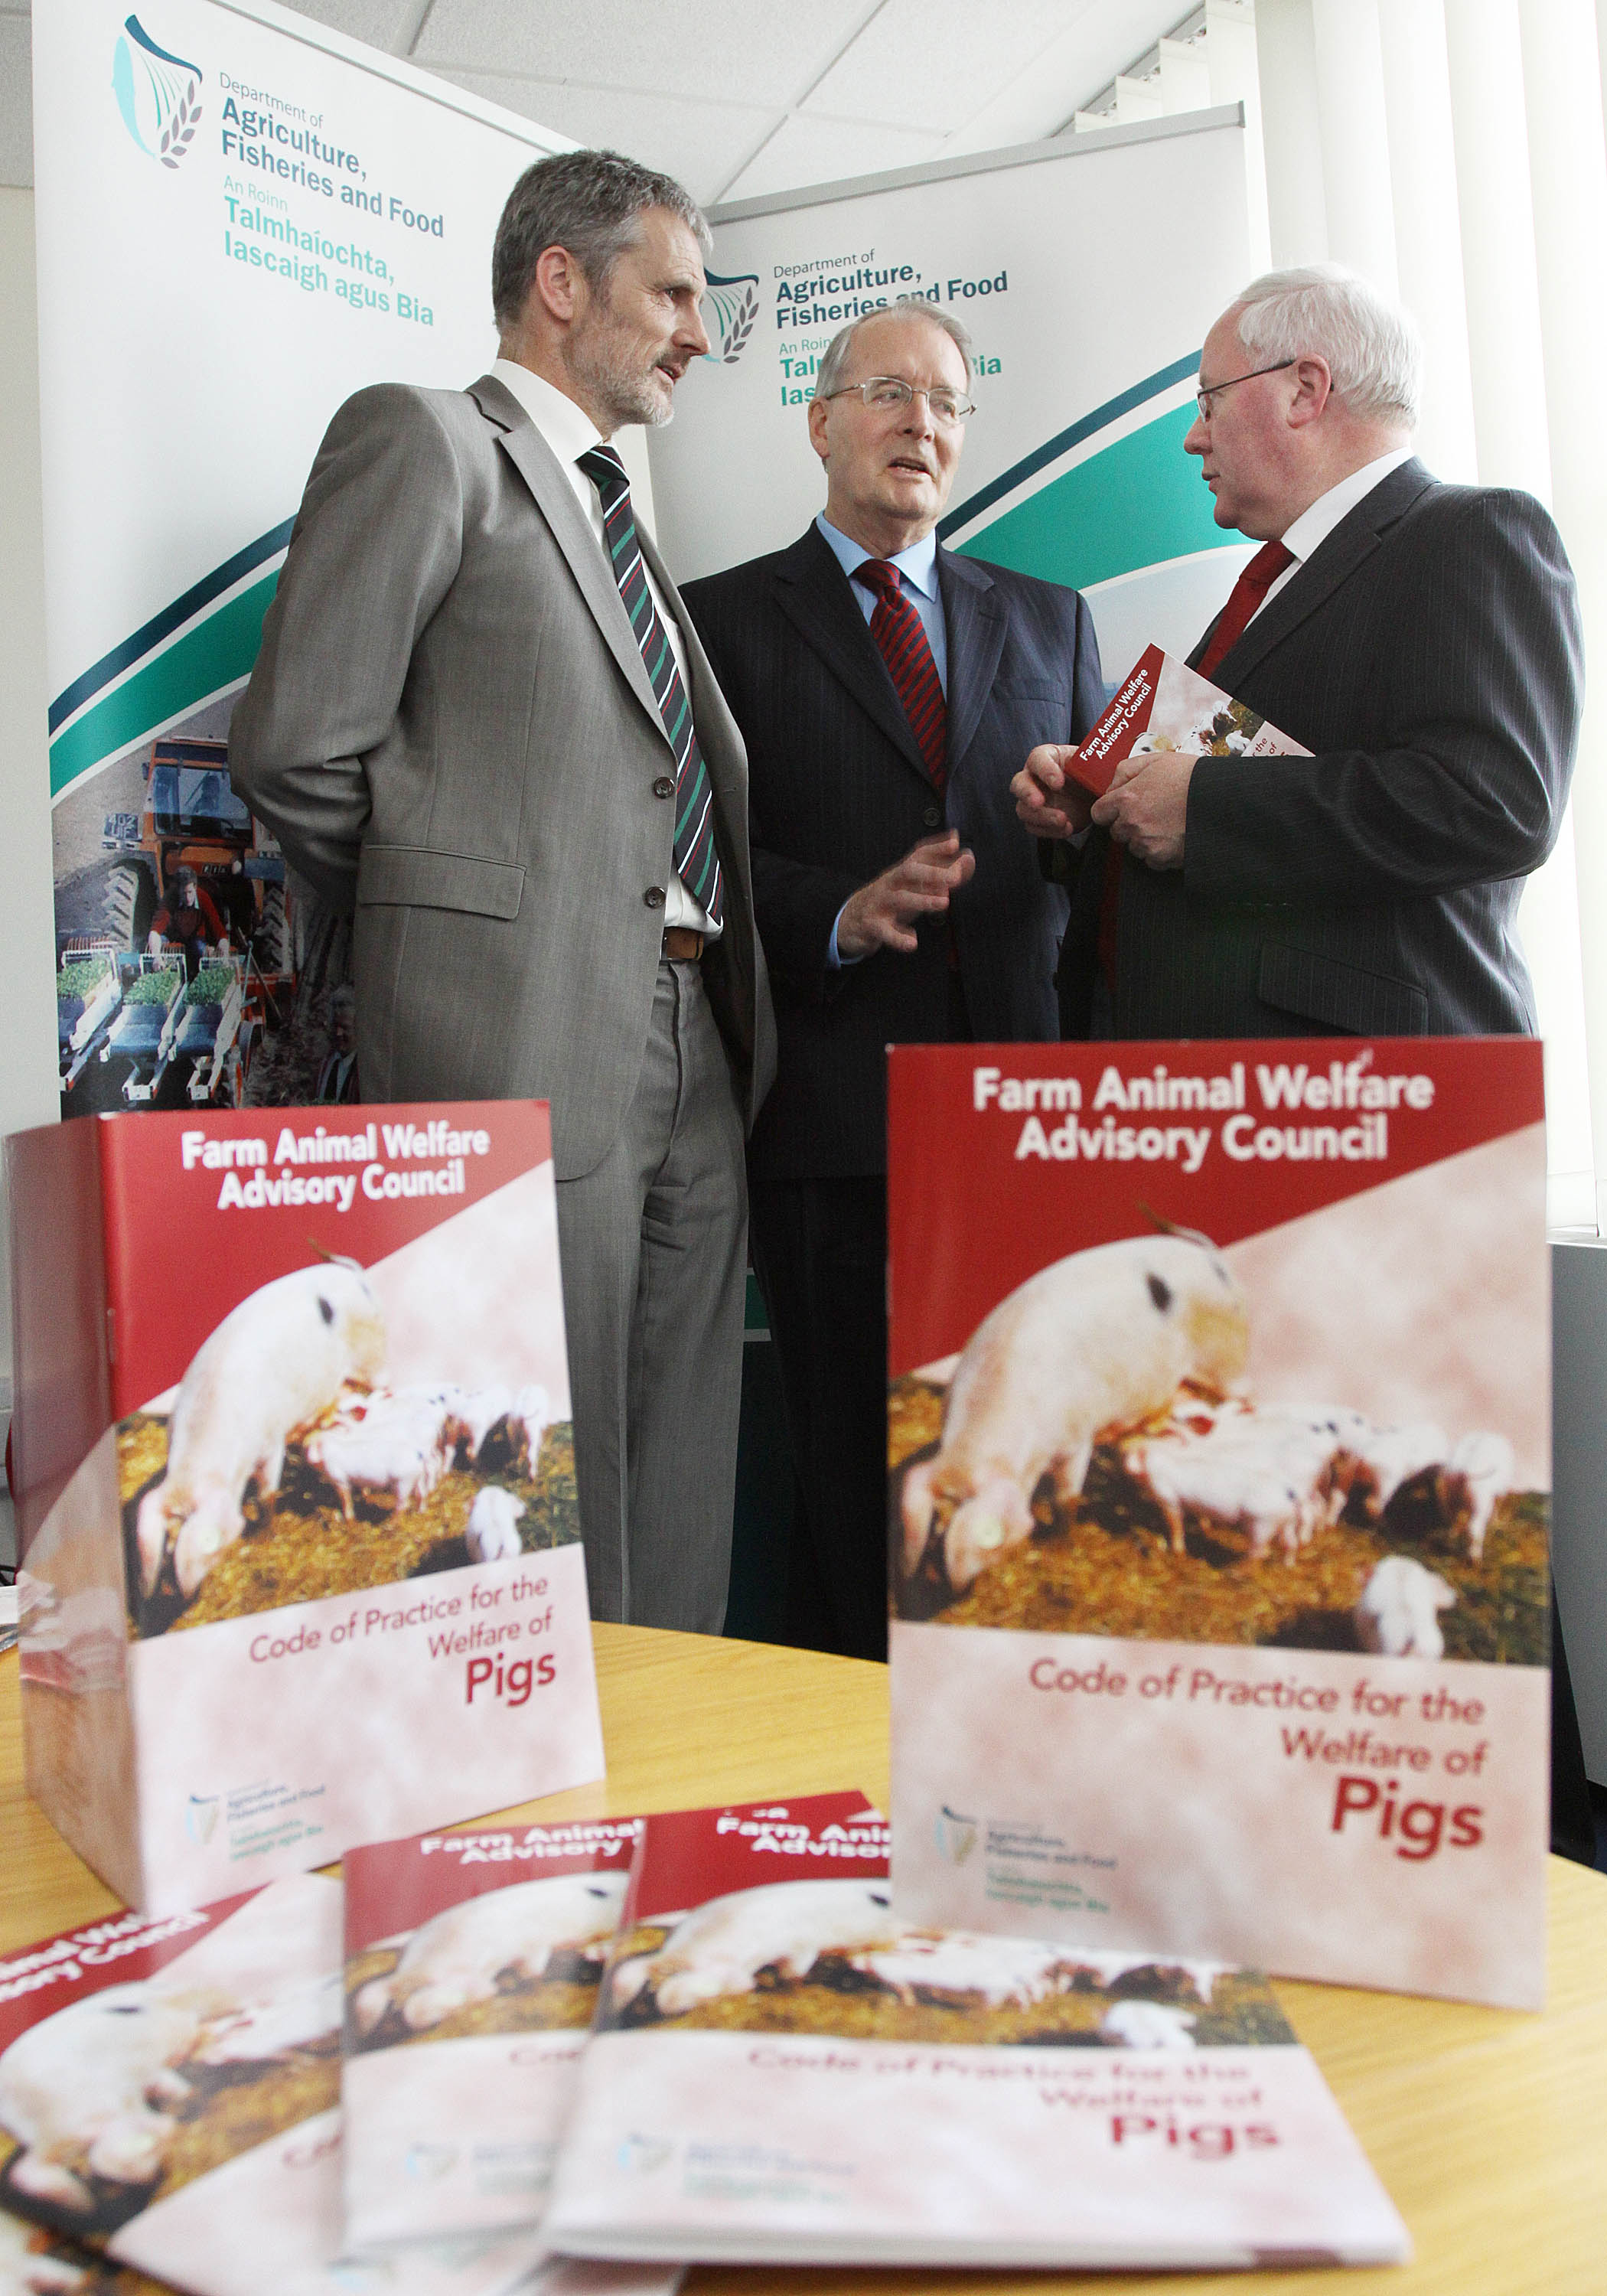 /media/fawac/content/gallery/pigslaunch/Code of Practice for the Welfare of Pigs Booklet Launch Image 2.jpg